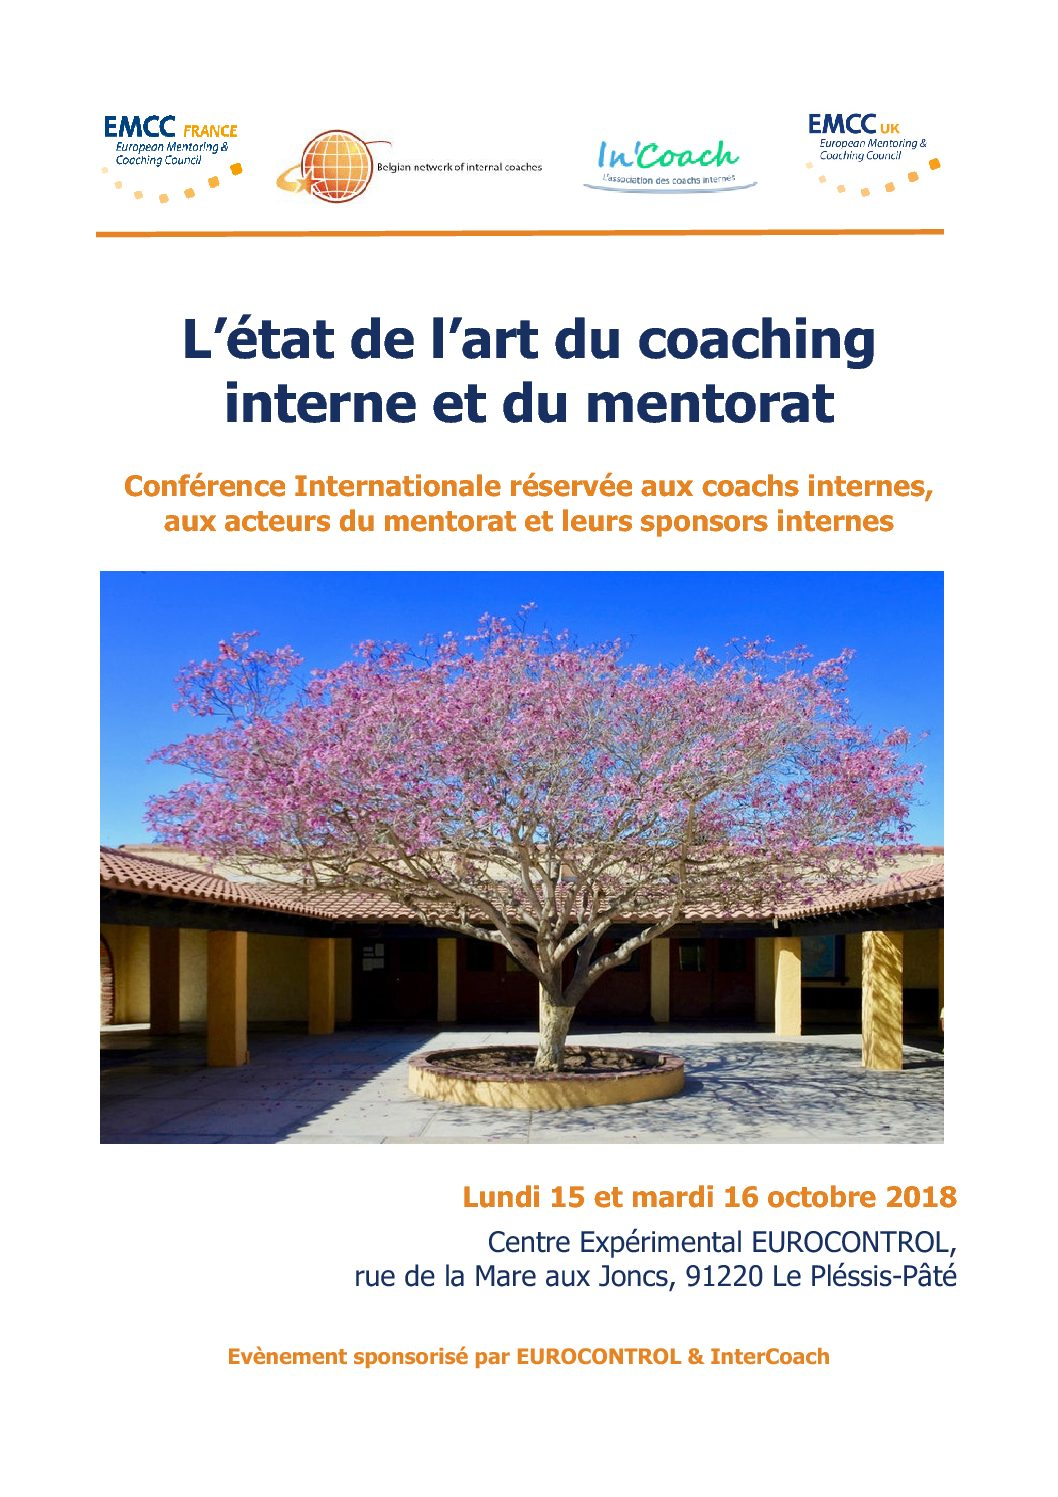 Conference brochure Paris 2018 (French version)